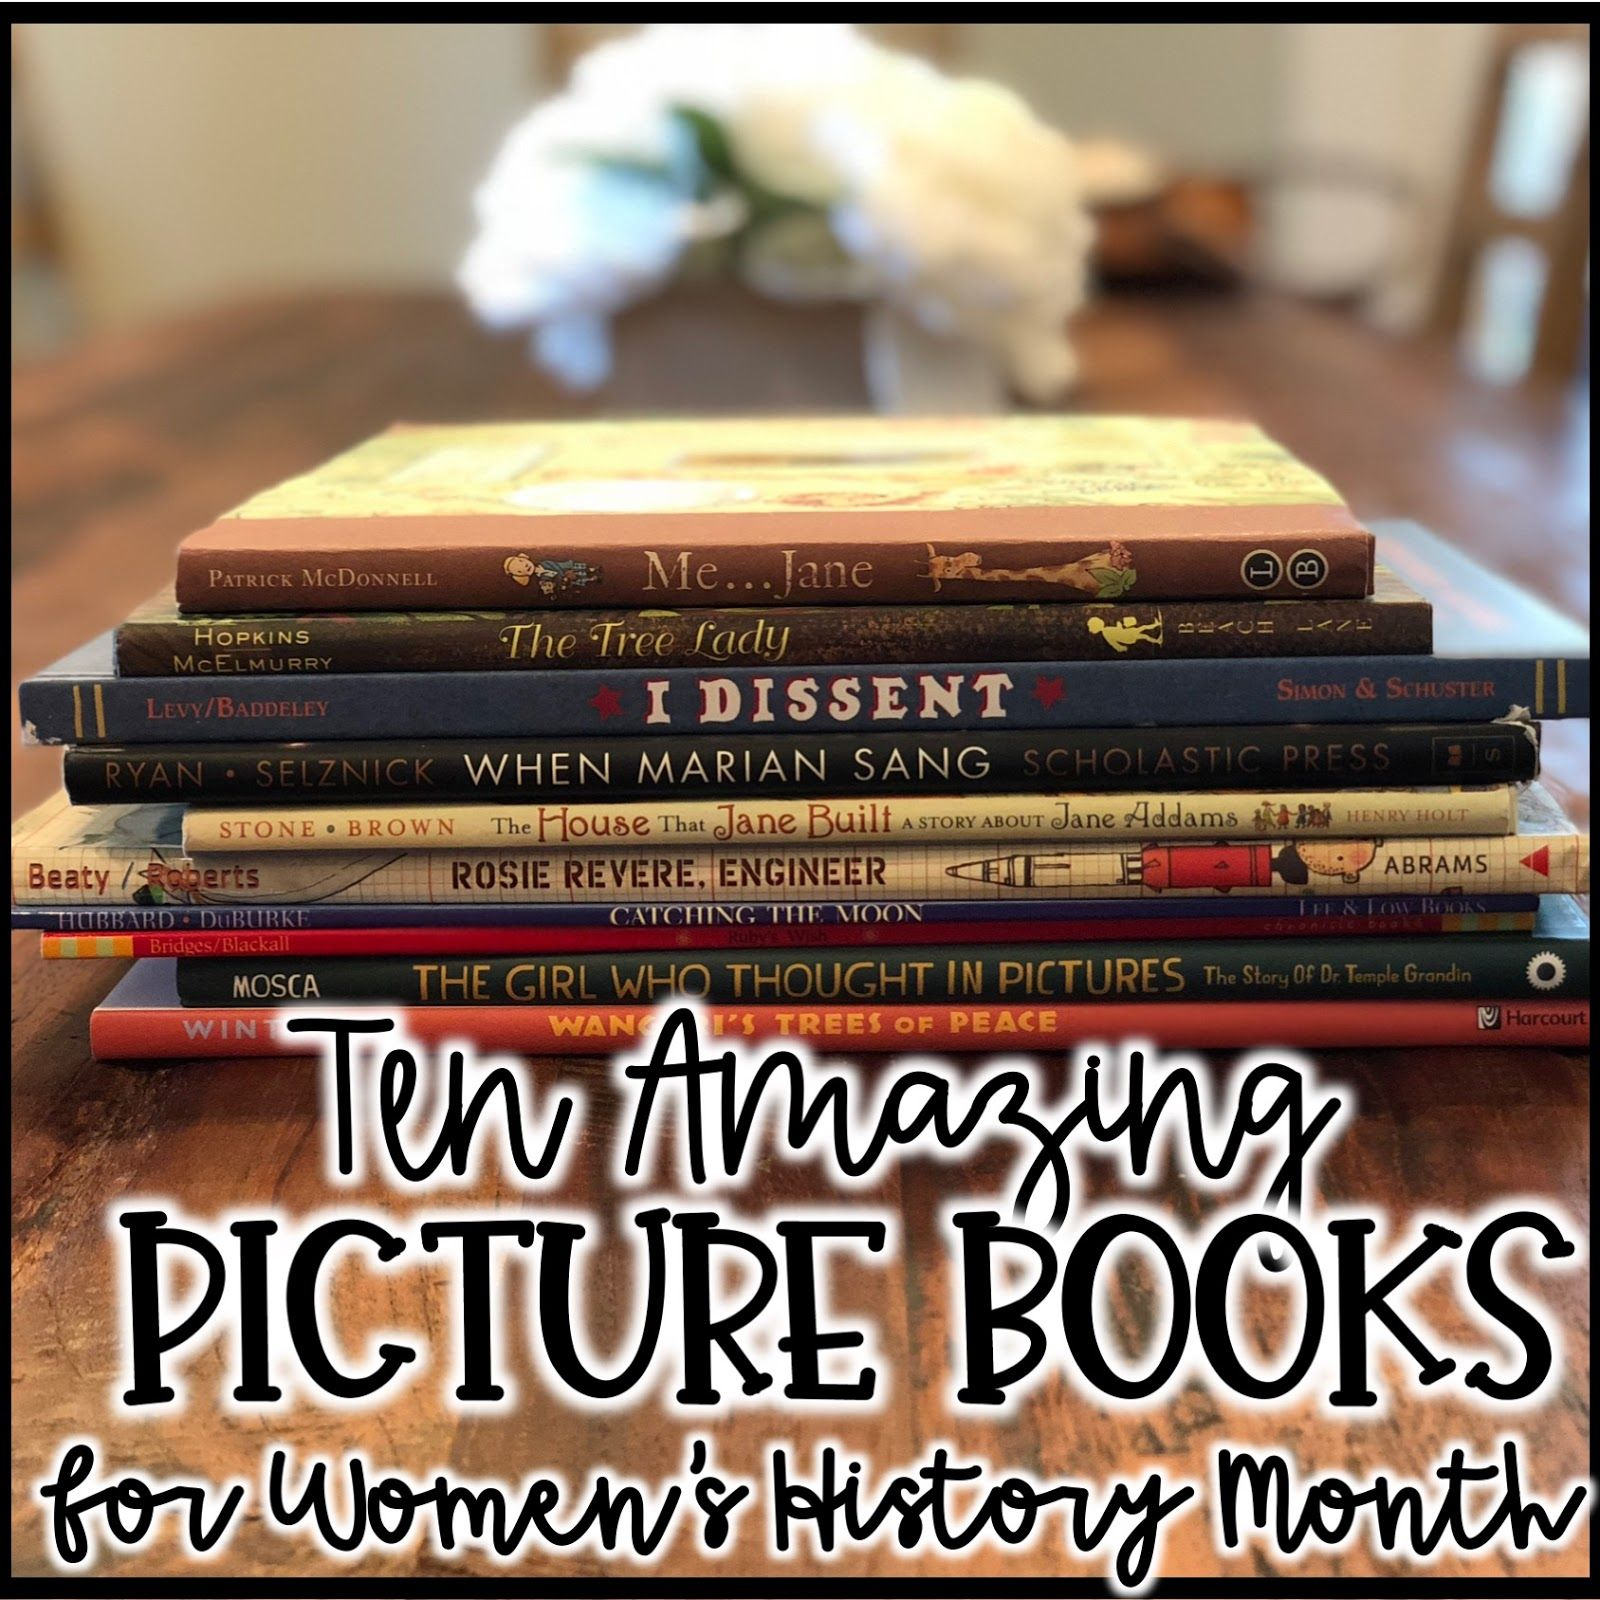 10 Picture Books for Women's History Month